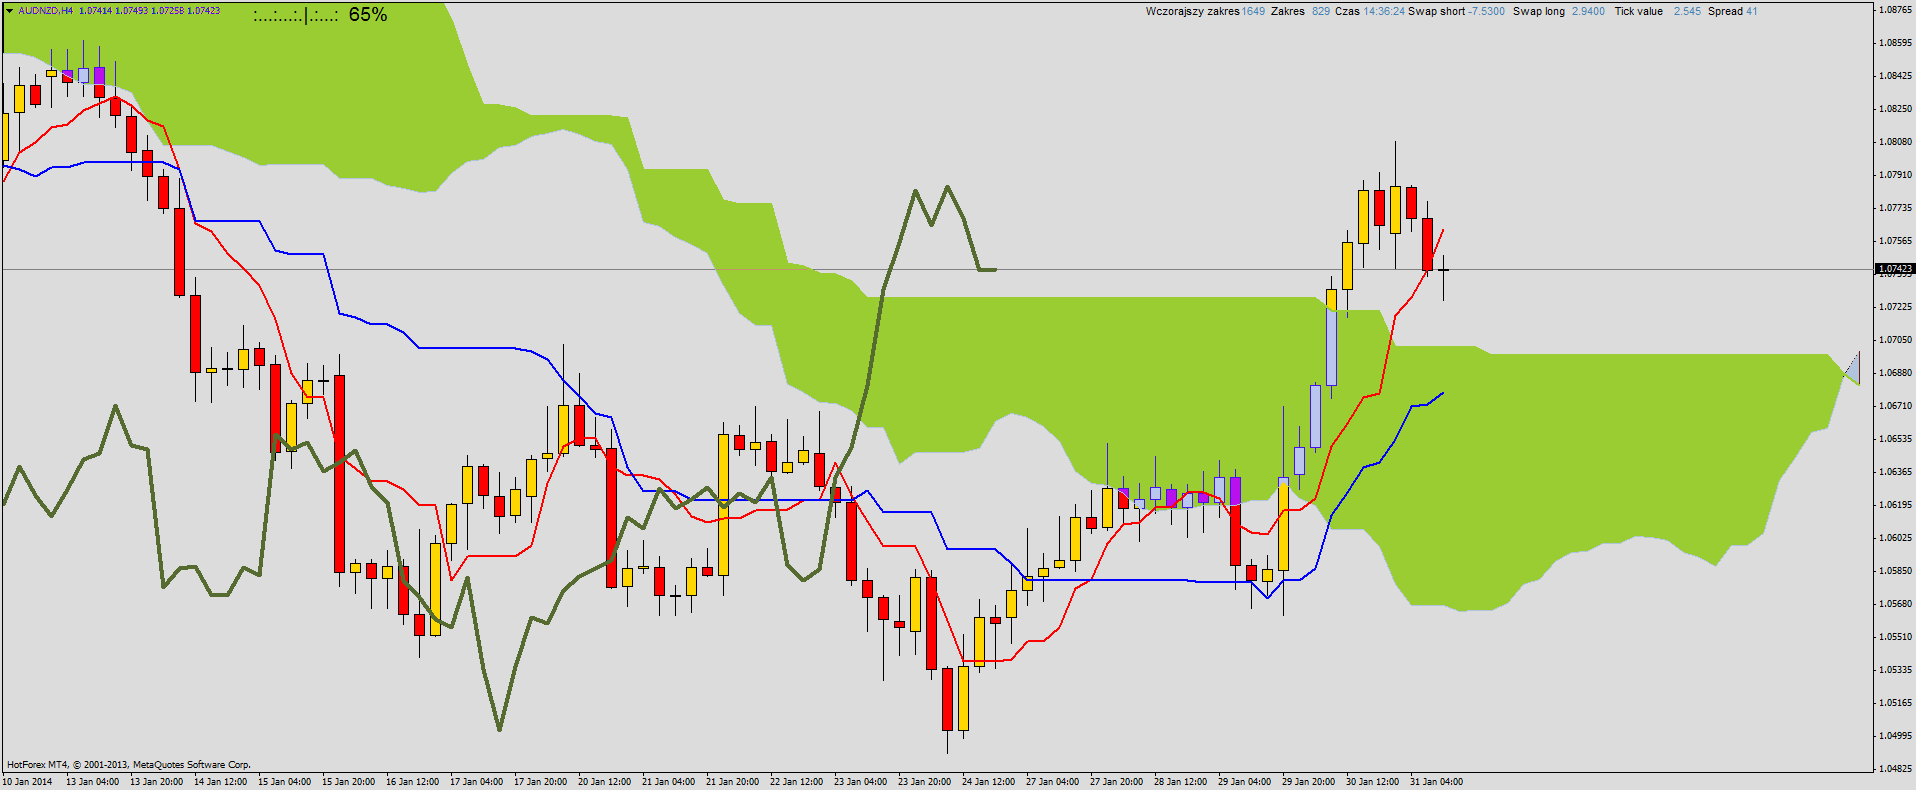 Aud nzd forex news - Australian dollar to New Zealand dollar Chart - Forex Market. AUD/NZD ...